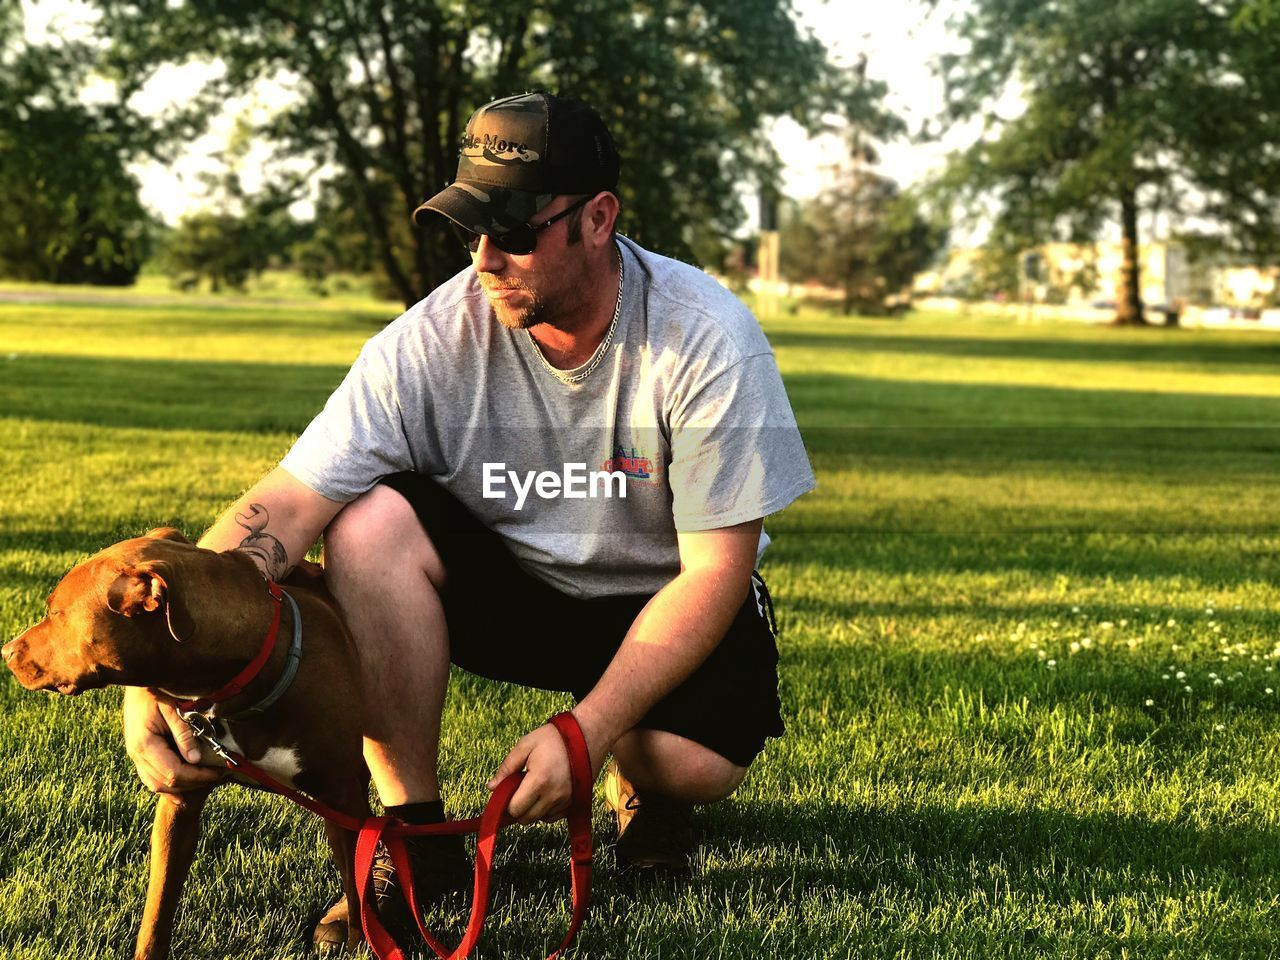 Man stroking dog while crouching on field